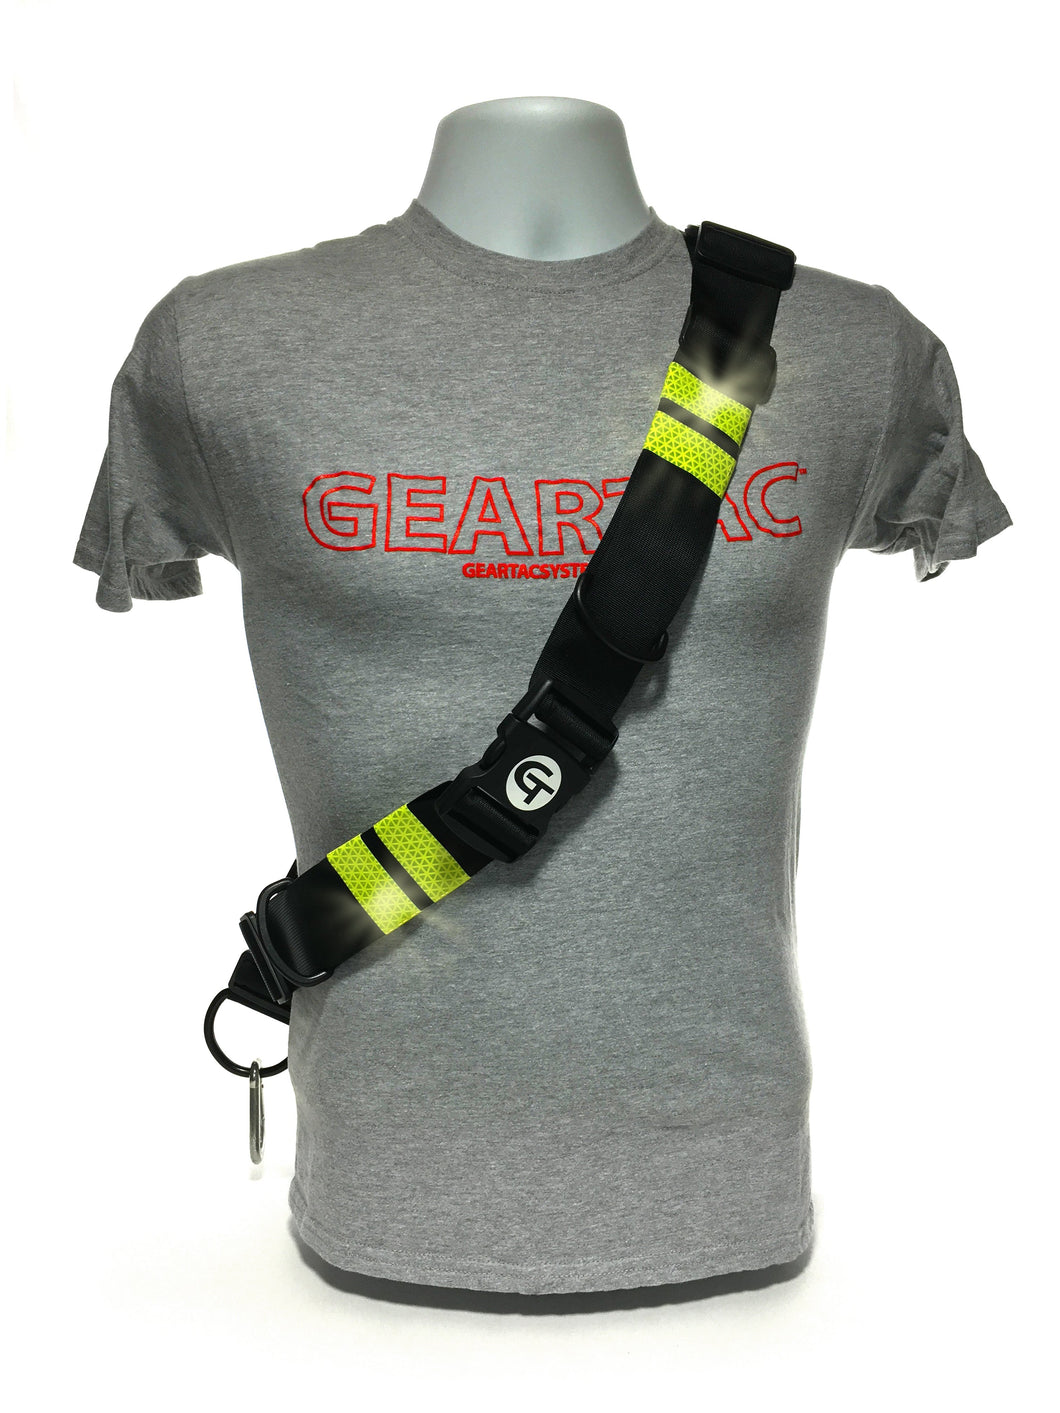 reflective tape is great for being seen at night when you are out hands free dog walking